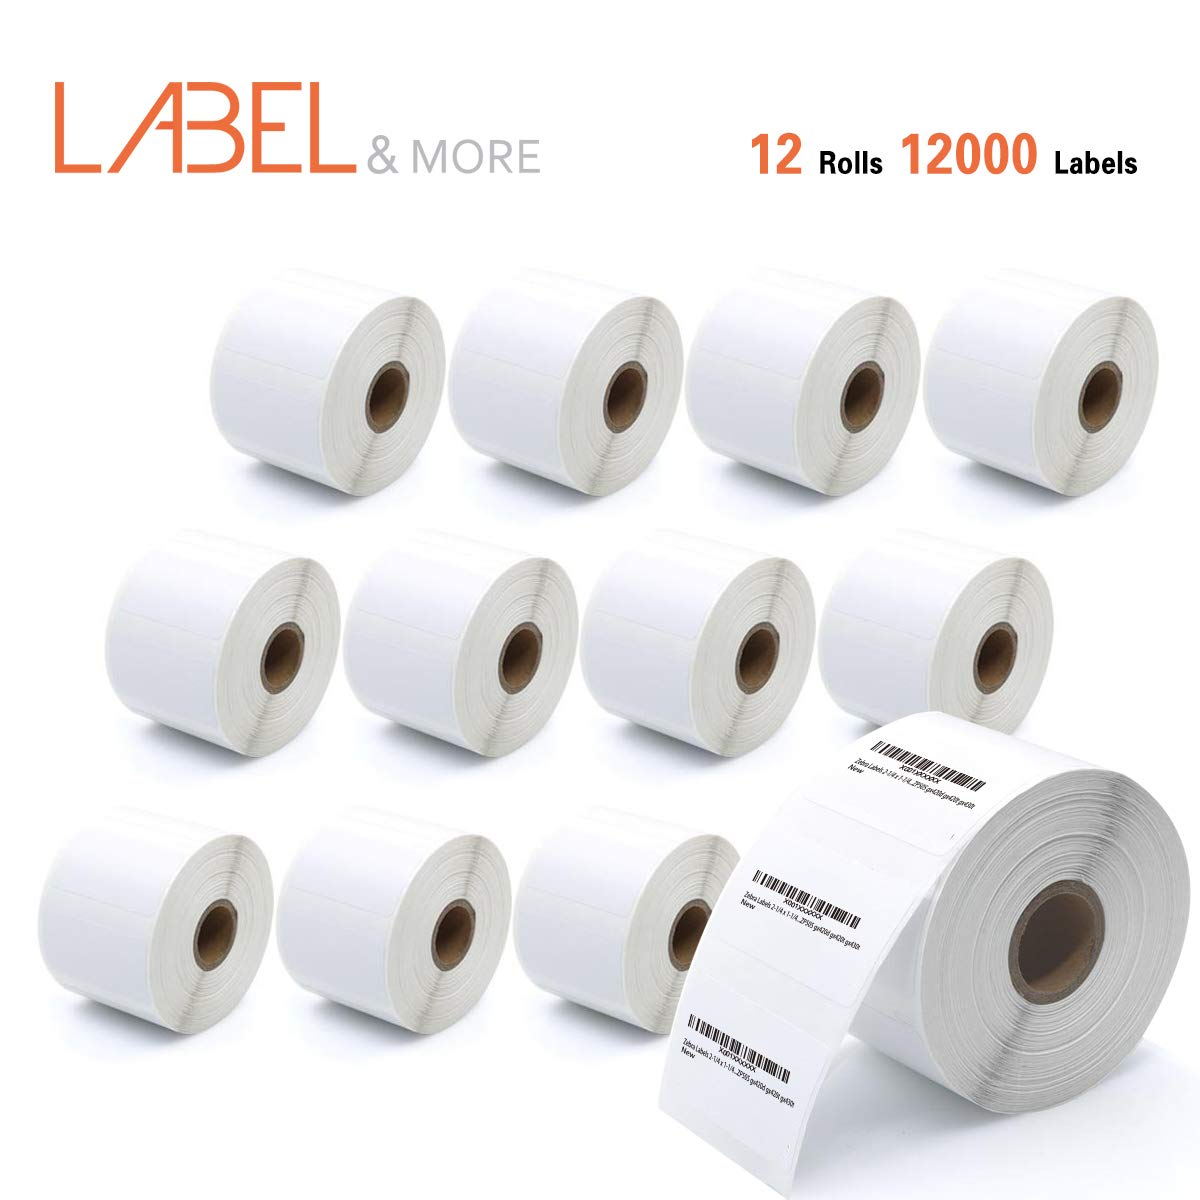 LABEL&MORE 2.25 x 1.25'' Direct Thermal Labels Zebra 2-1/4x1-1/4 inch Perforated SKU Labels for Barcode Address Postage and Shipping Work With Zebra lp2824 lp2844 ZP450 ZP505 gx420 [12Roll,12000Labels]